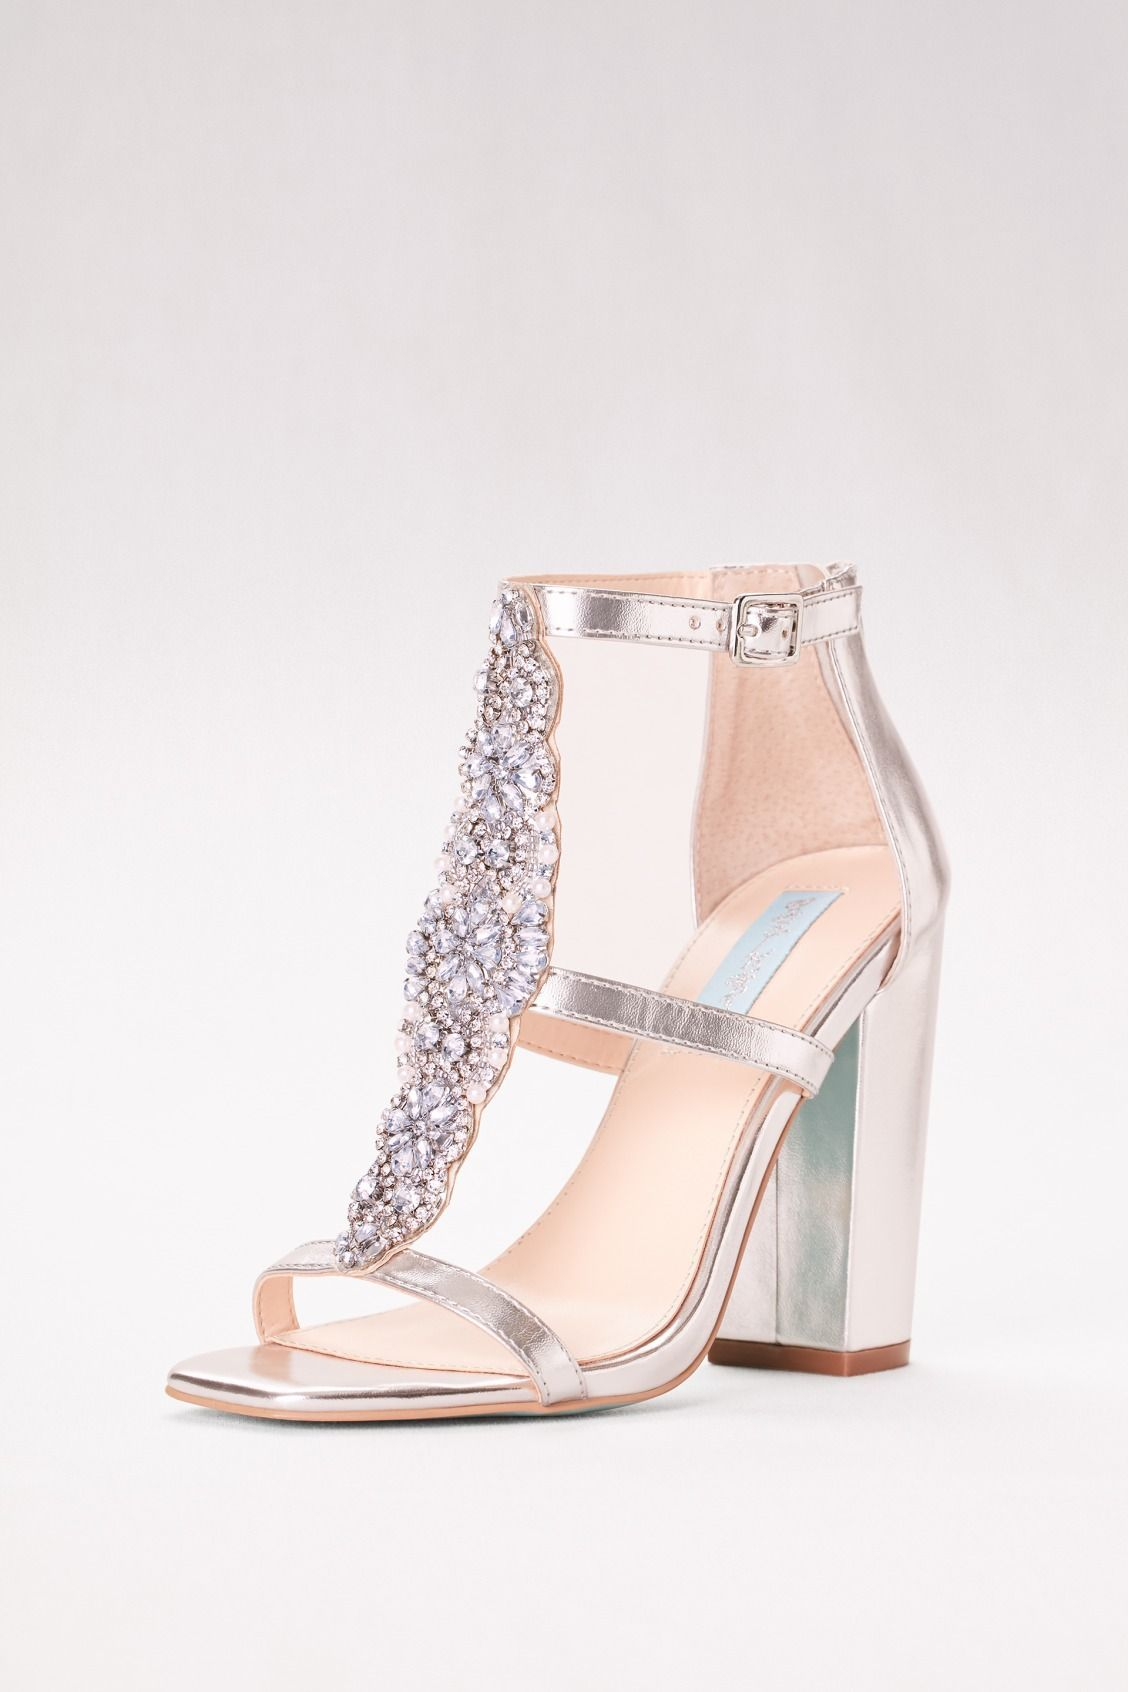 This block heel will allow you to dance all night in comfort and